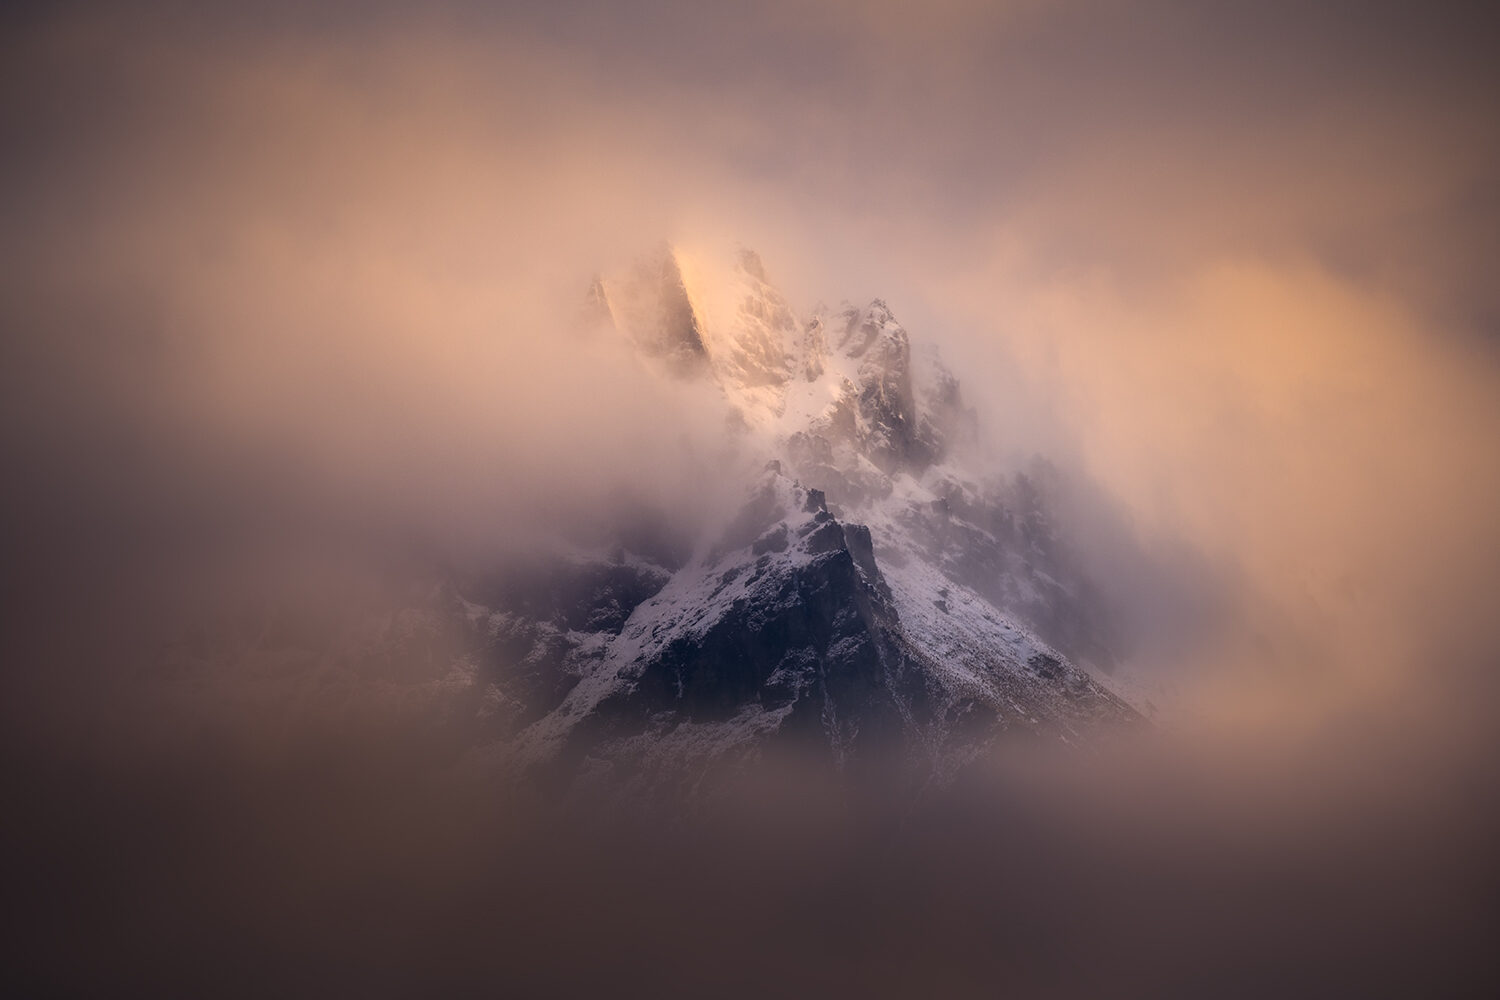 Mountain peeking through the cloud, New Zealand